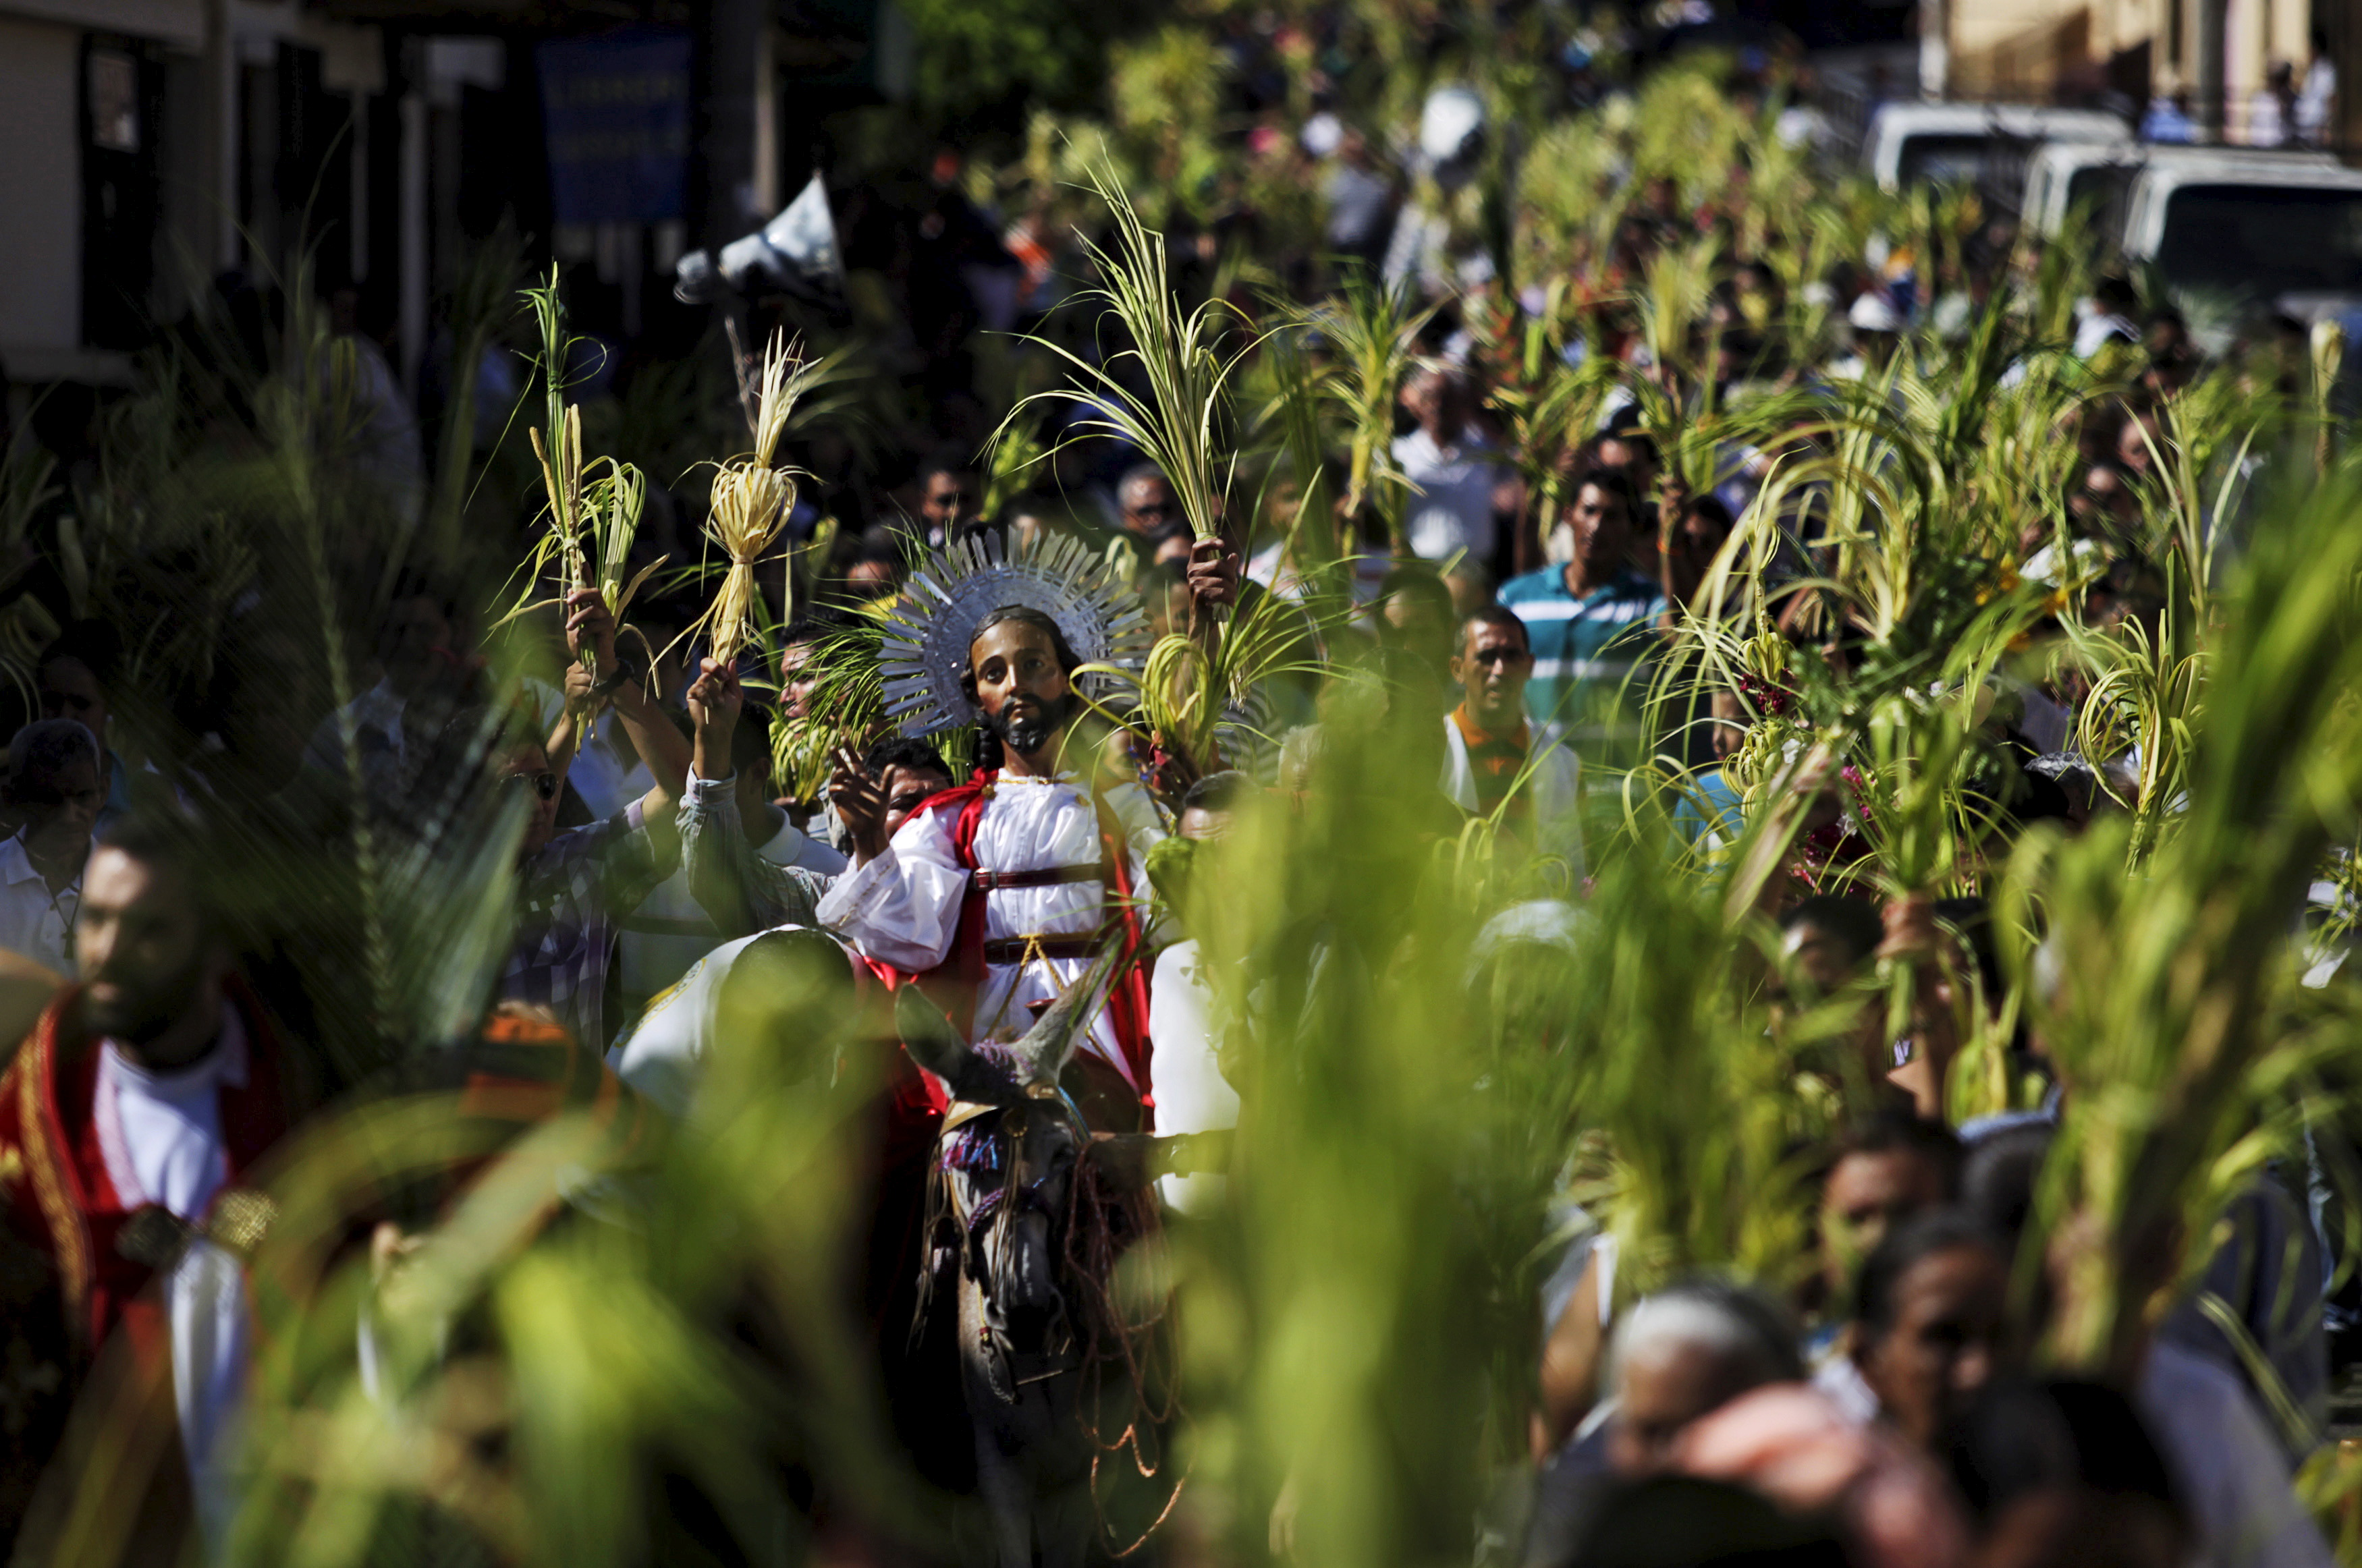 Catholics participate in the Palm Sunday procession in Suchitoto March 29, 2015. Palm Sunday commemorates Jesus Christ's triumphant entry into Jerusalem on the back of a donkey and marks the start of Holy Week.   REUTERS/Jose Cabezas